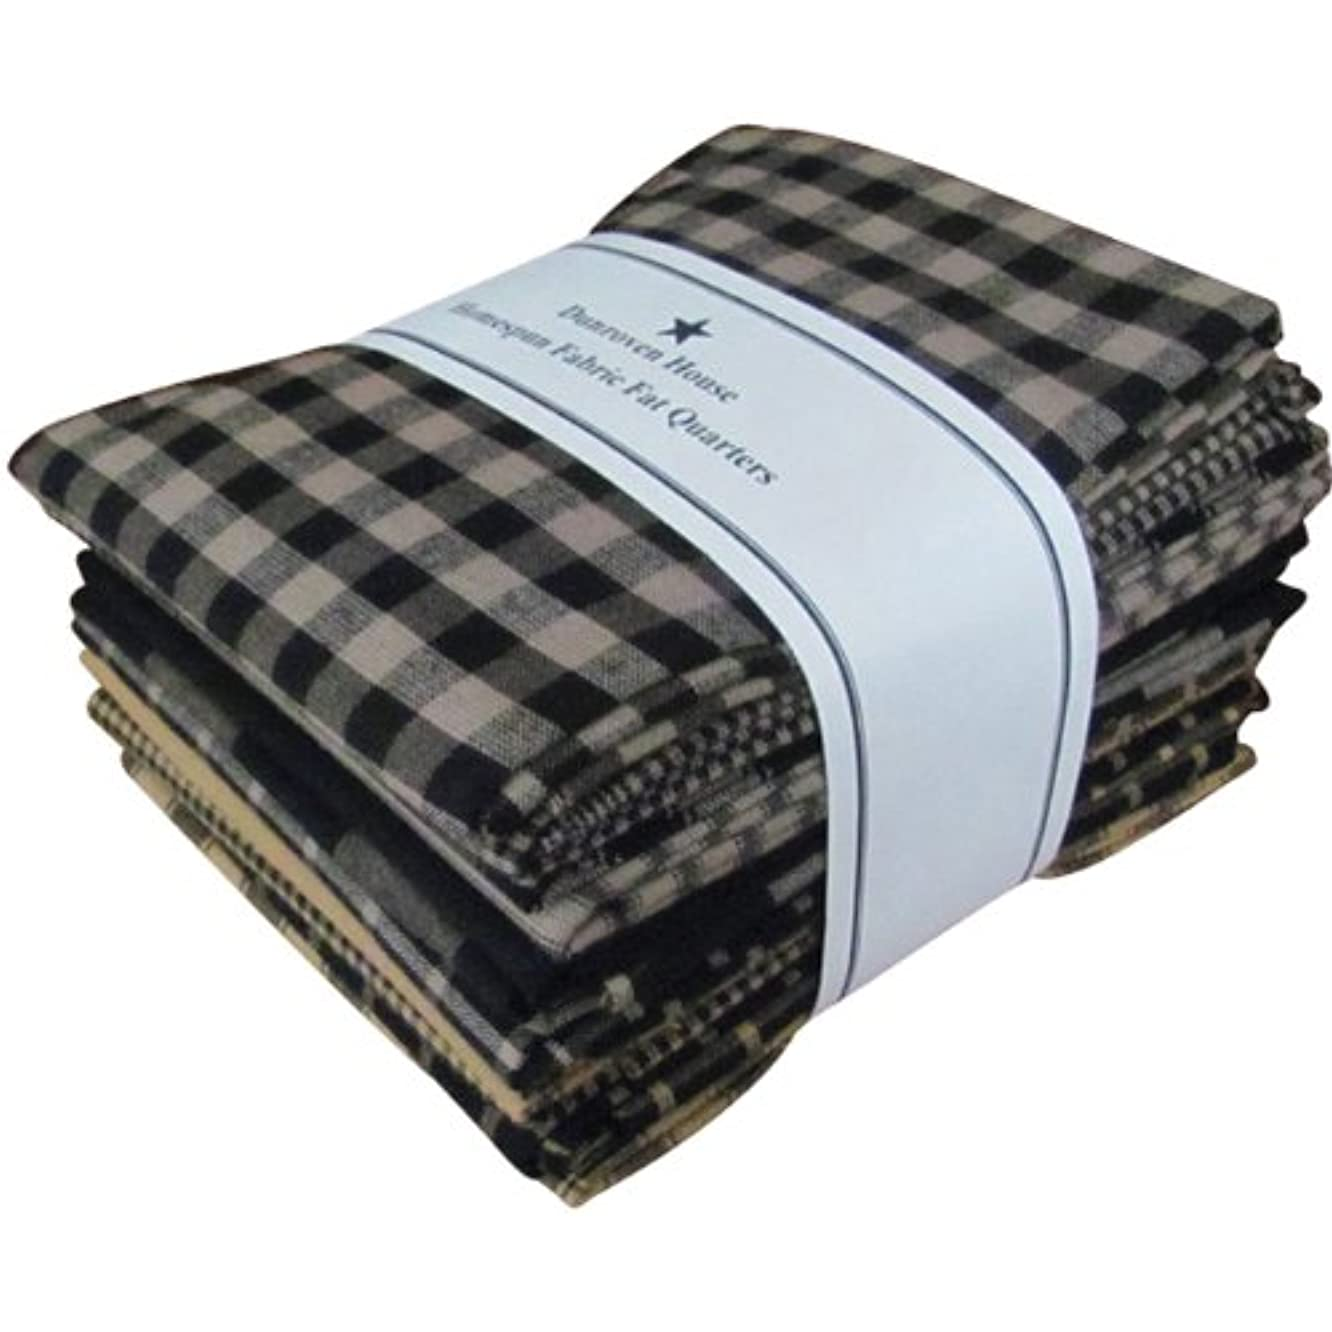 Dunroven House Homespun 12-Piece Fat Quarters, 18 by 21-Inch, Black